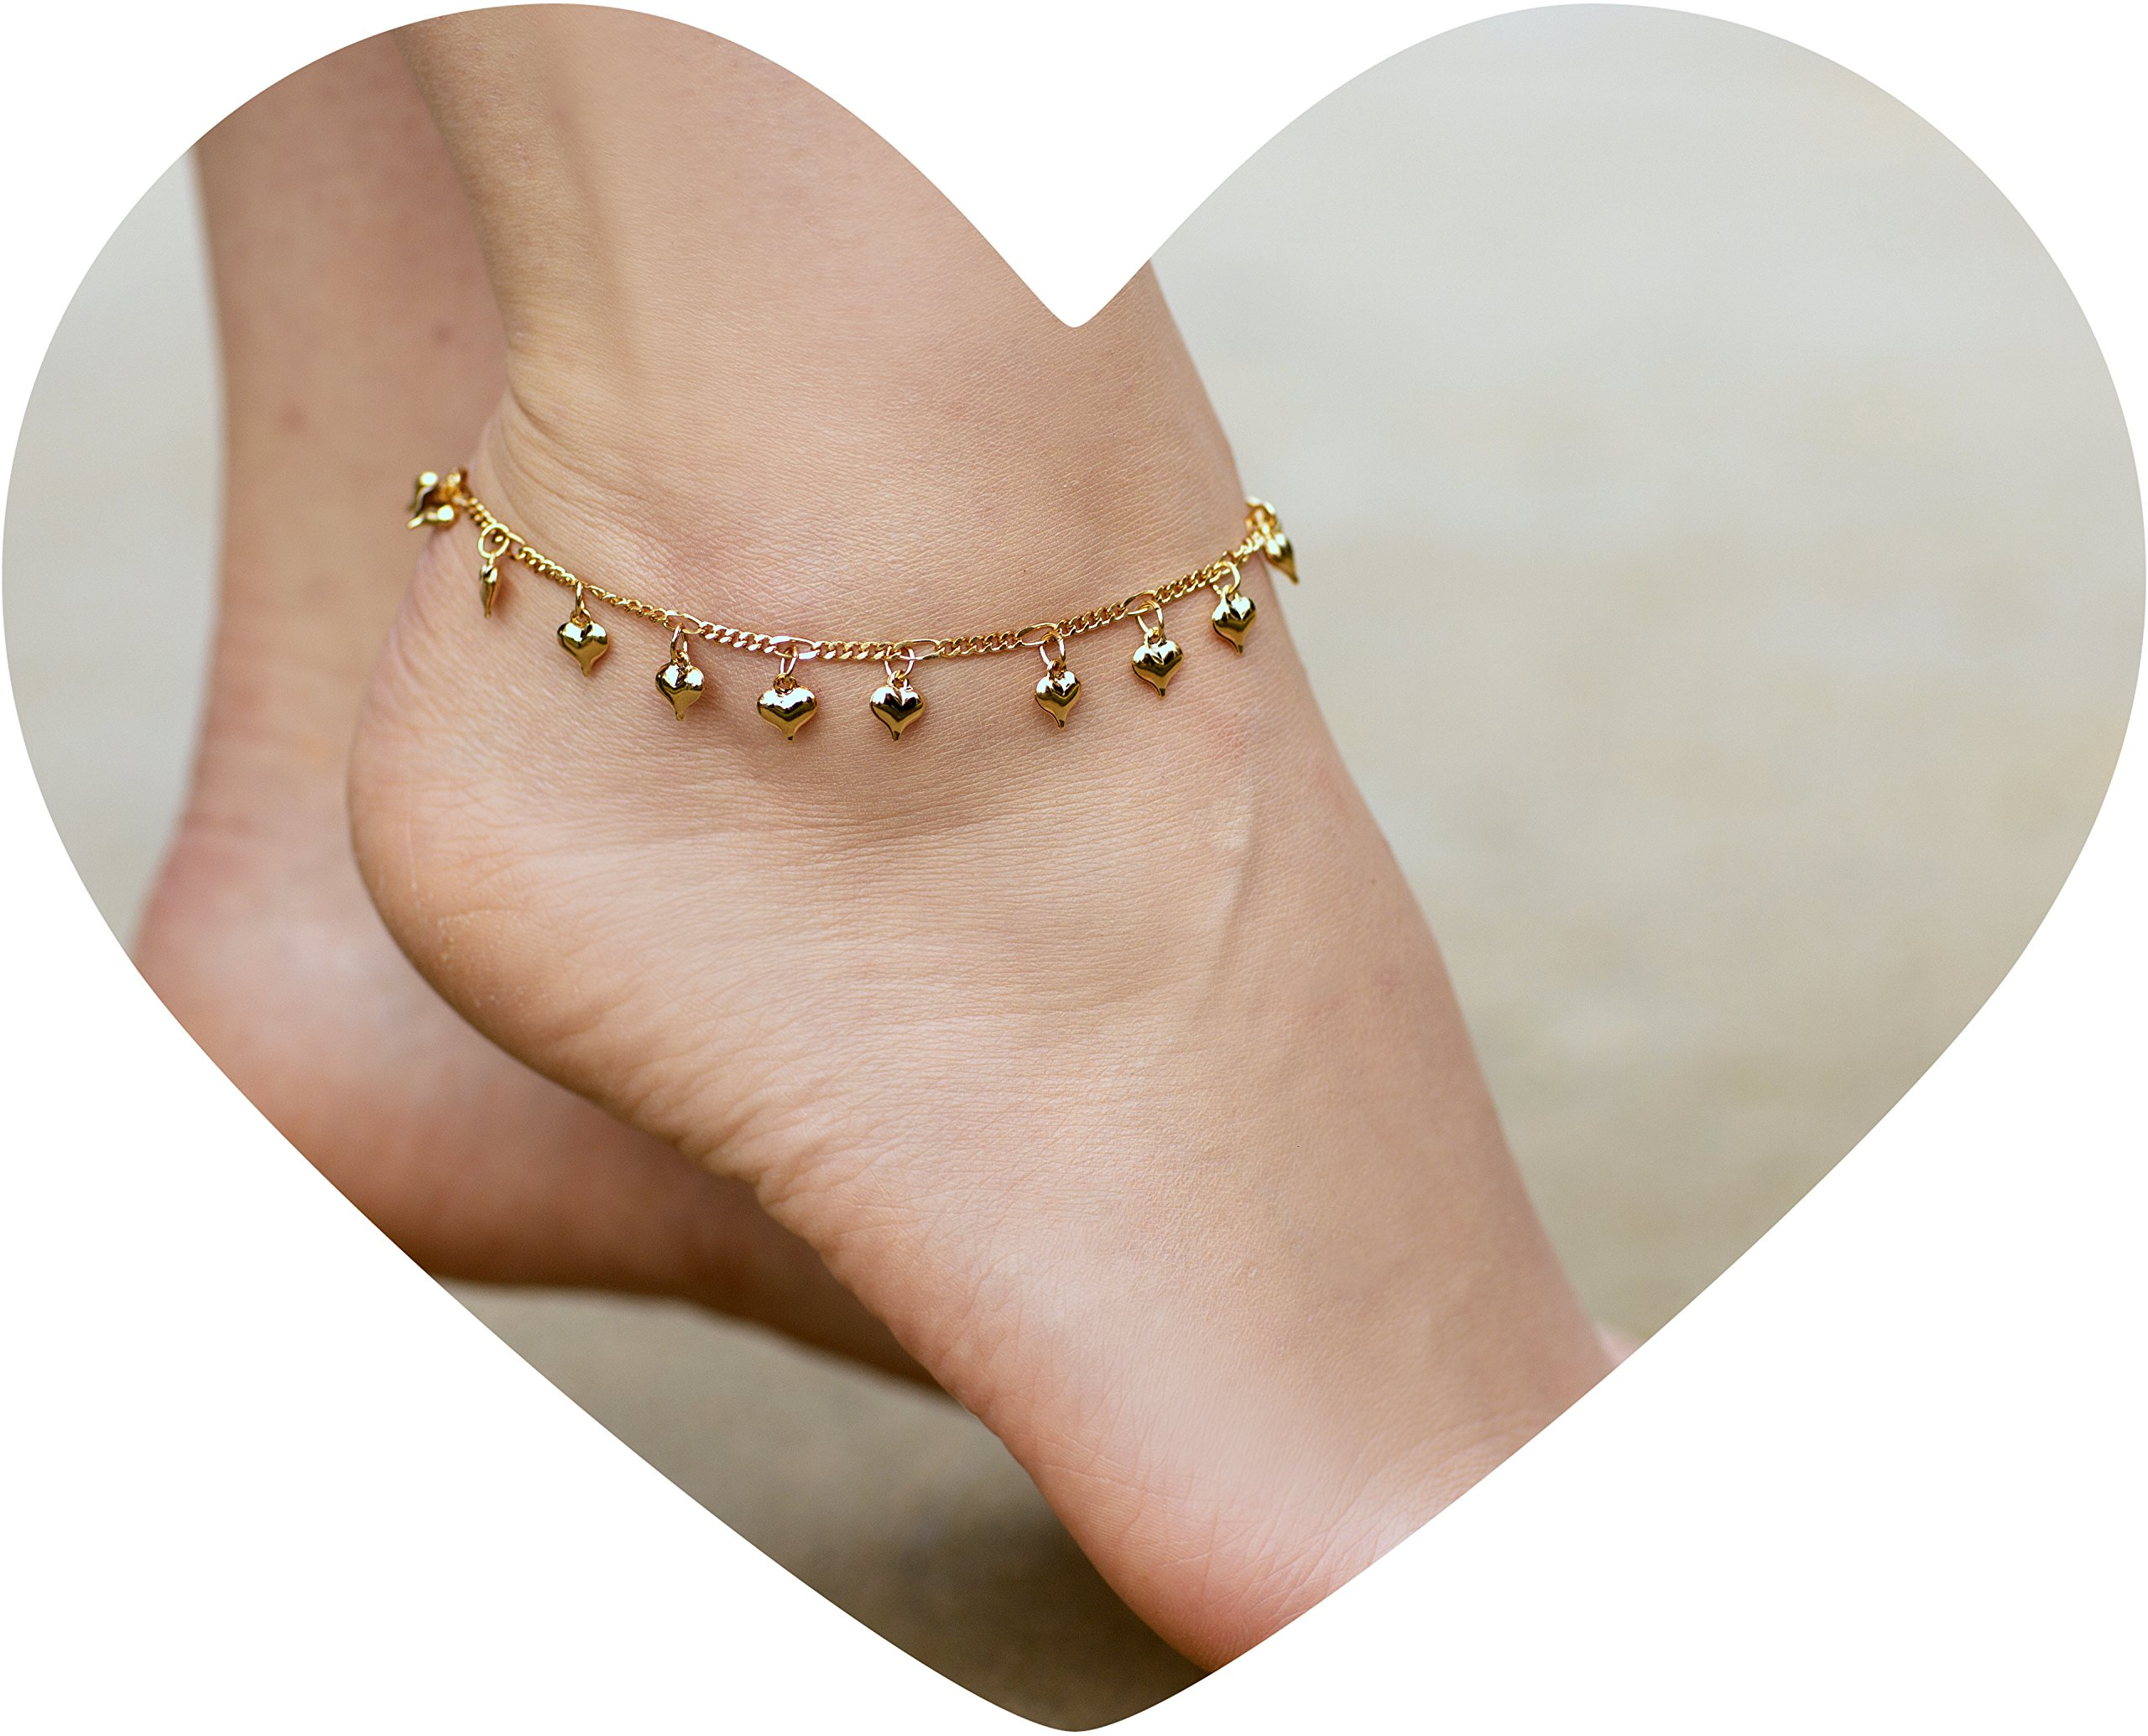 Lifetime Jewelry Anklets for Women and Teen Girls - 24K Gold Plated Chain with Dangling Hearts - Ankle Bracelet to Wear at Beach or Party - Cute Surfer Anklet - 9 10 and 11 inches (10)